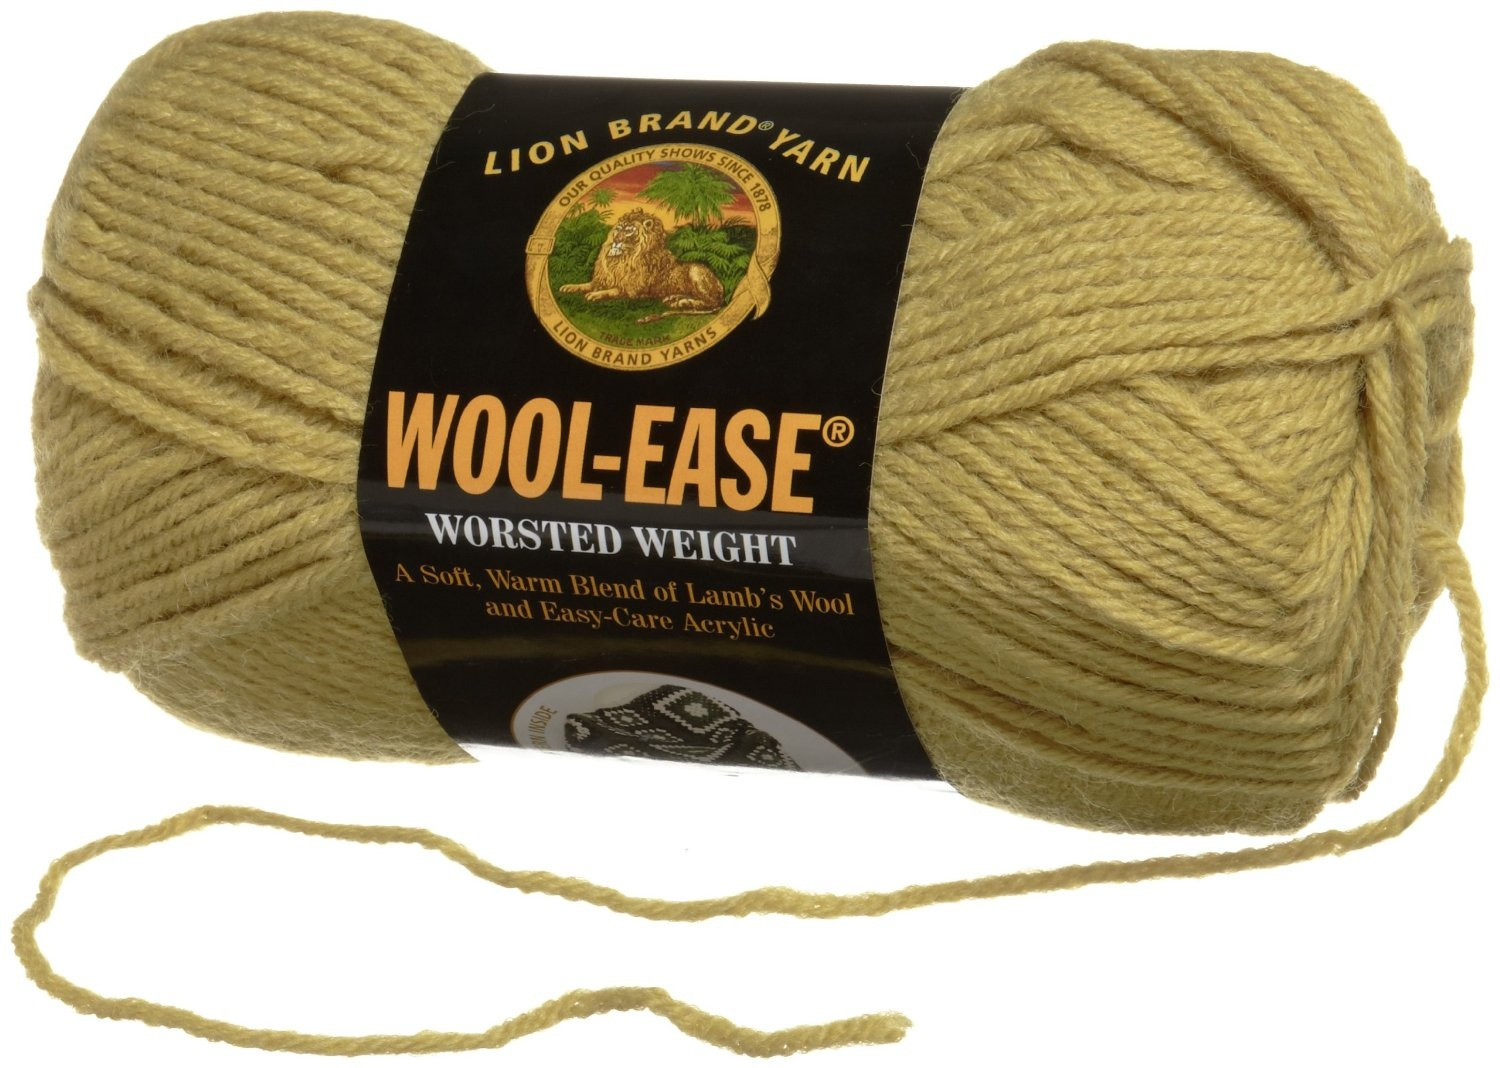 Lion Brand Wool Ease Elegant Lion Brand Yarn Wool Ease Yarn Best Price Of Lion Brand Wool Ease New Lion Brand Yarn Wool Ease Yarn Best Price